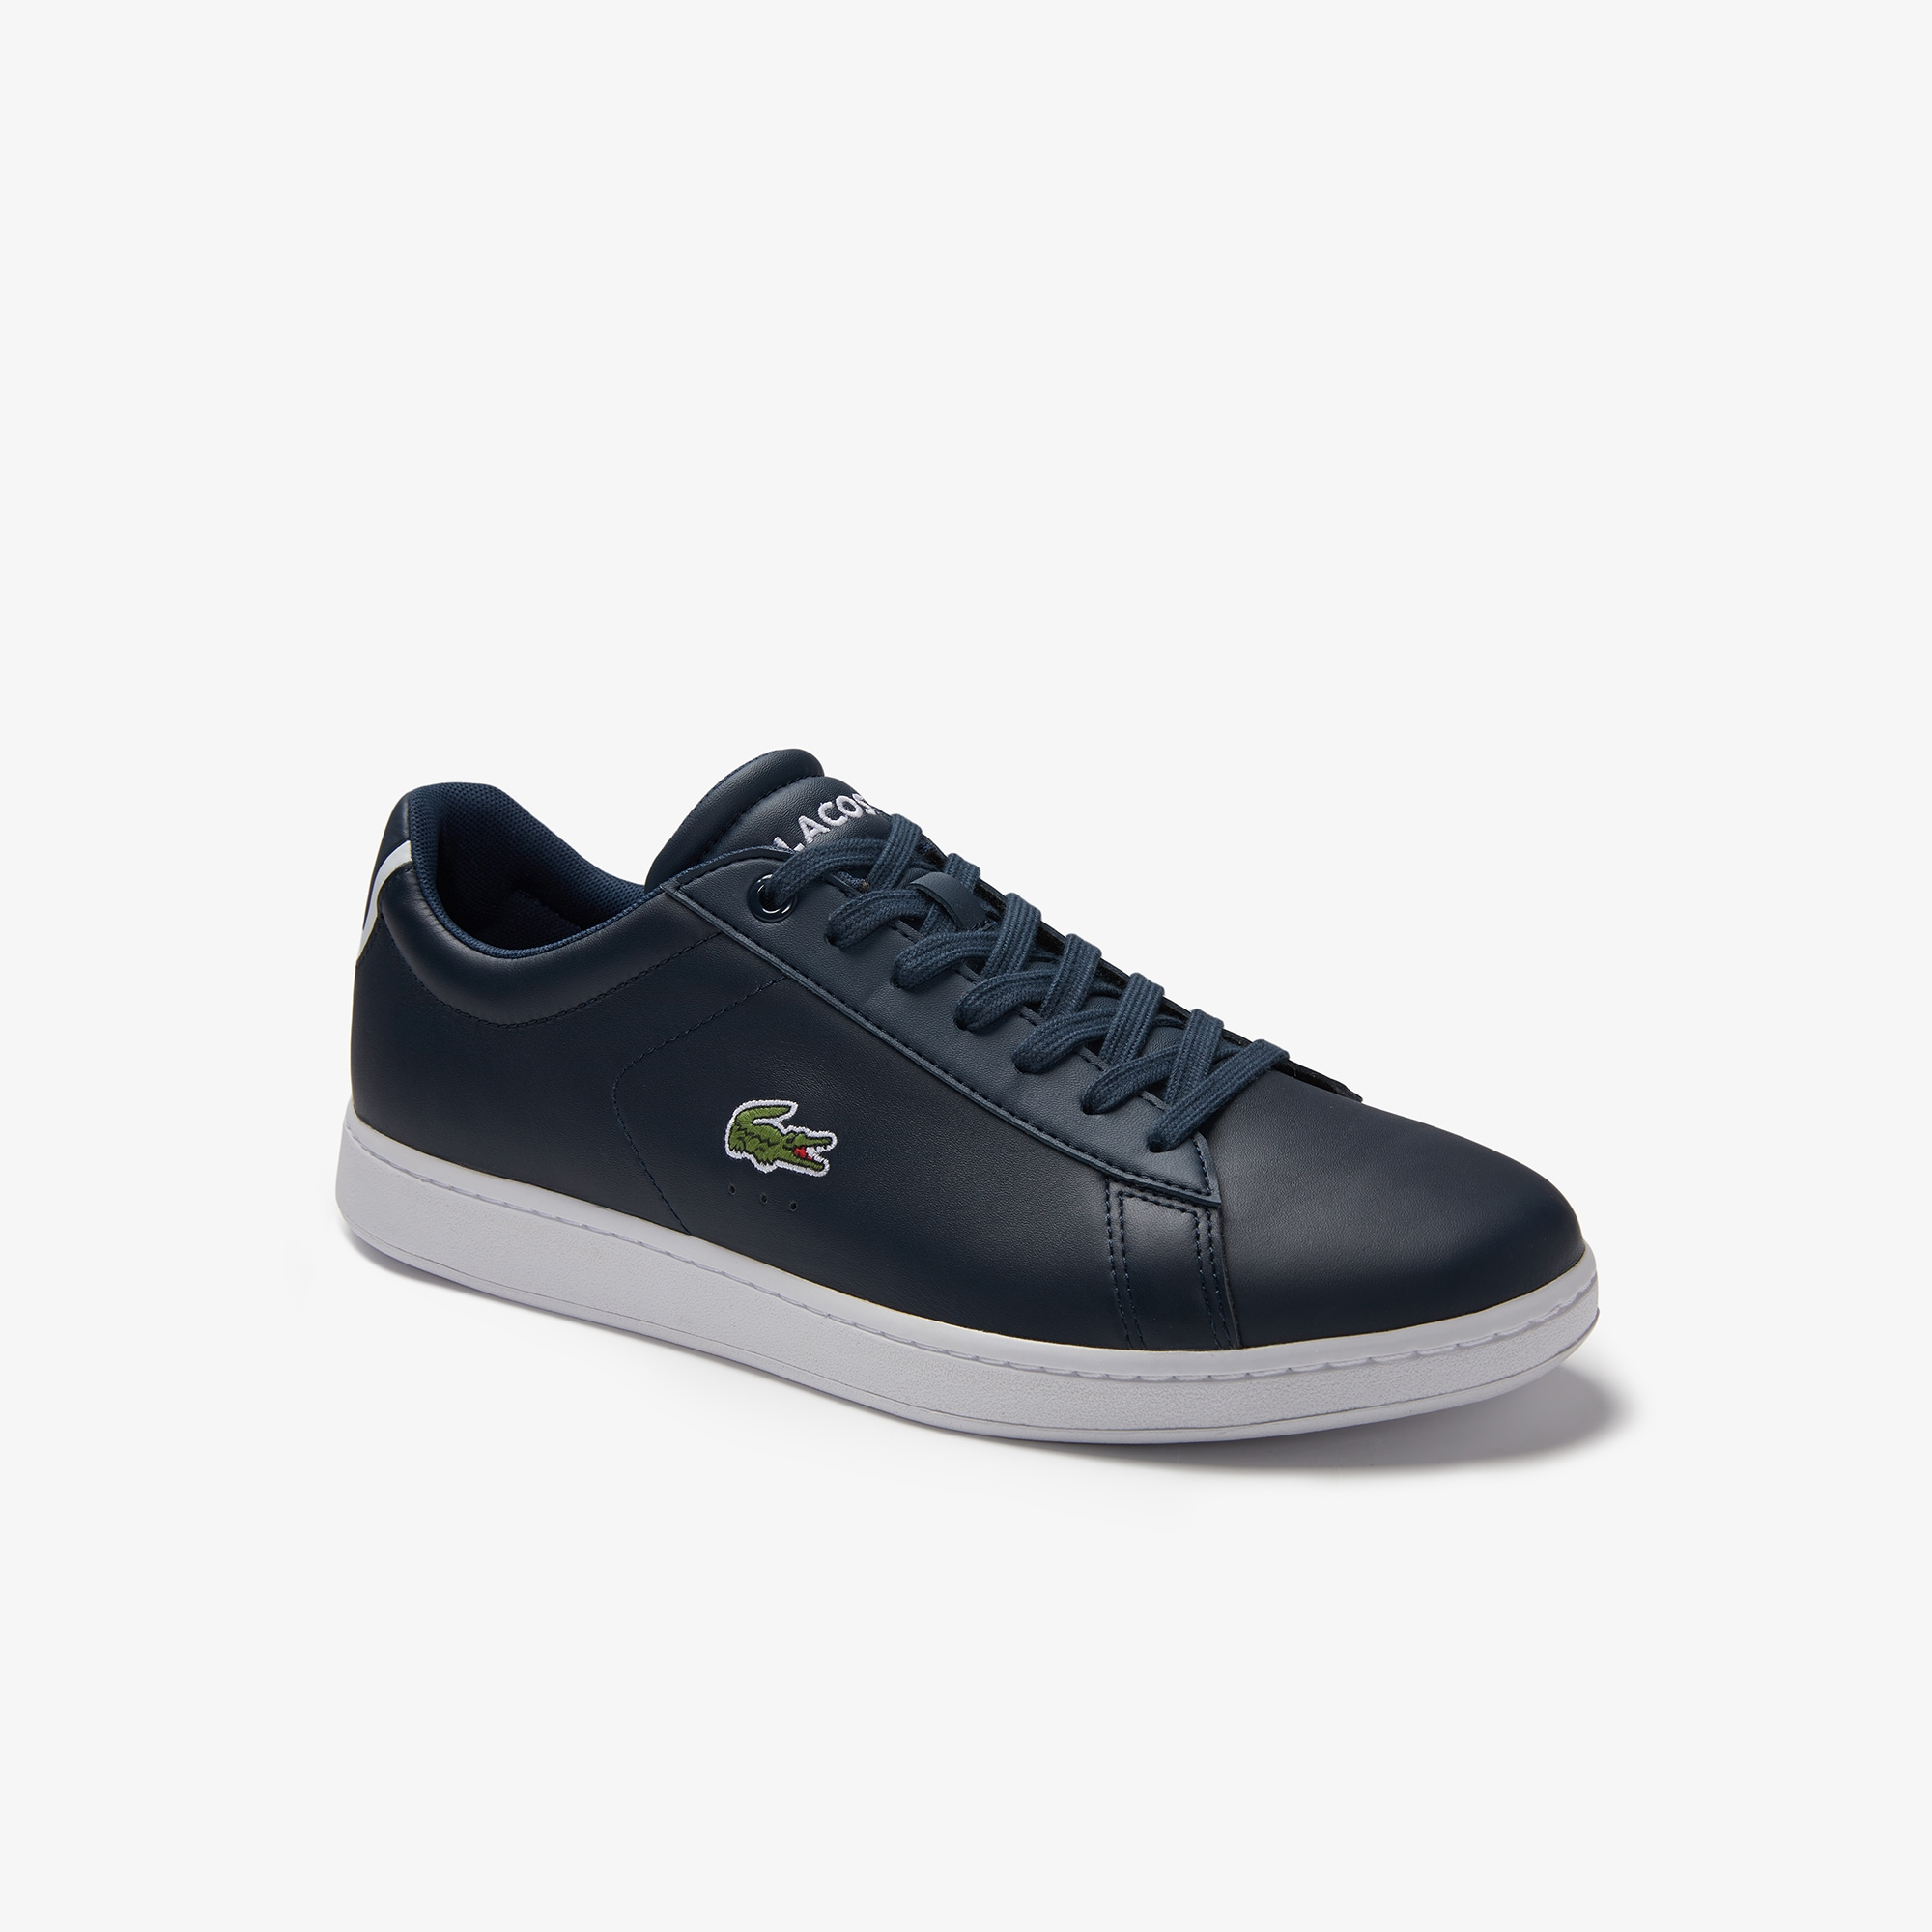 Men's Carnaby Evo BL Leather Trainers. 510.00 AED 510.00 AED. Colour : Navy  Blue